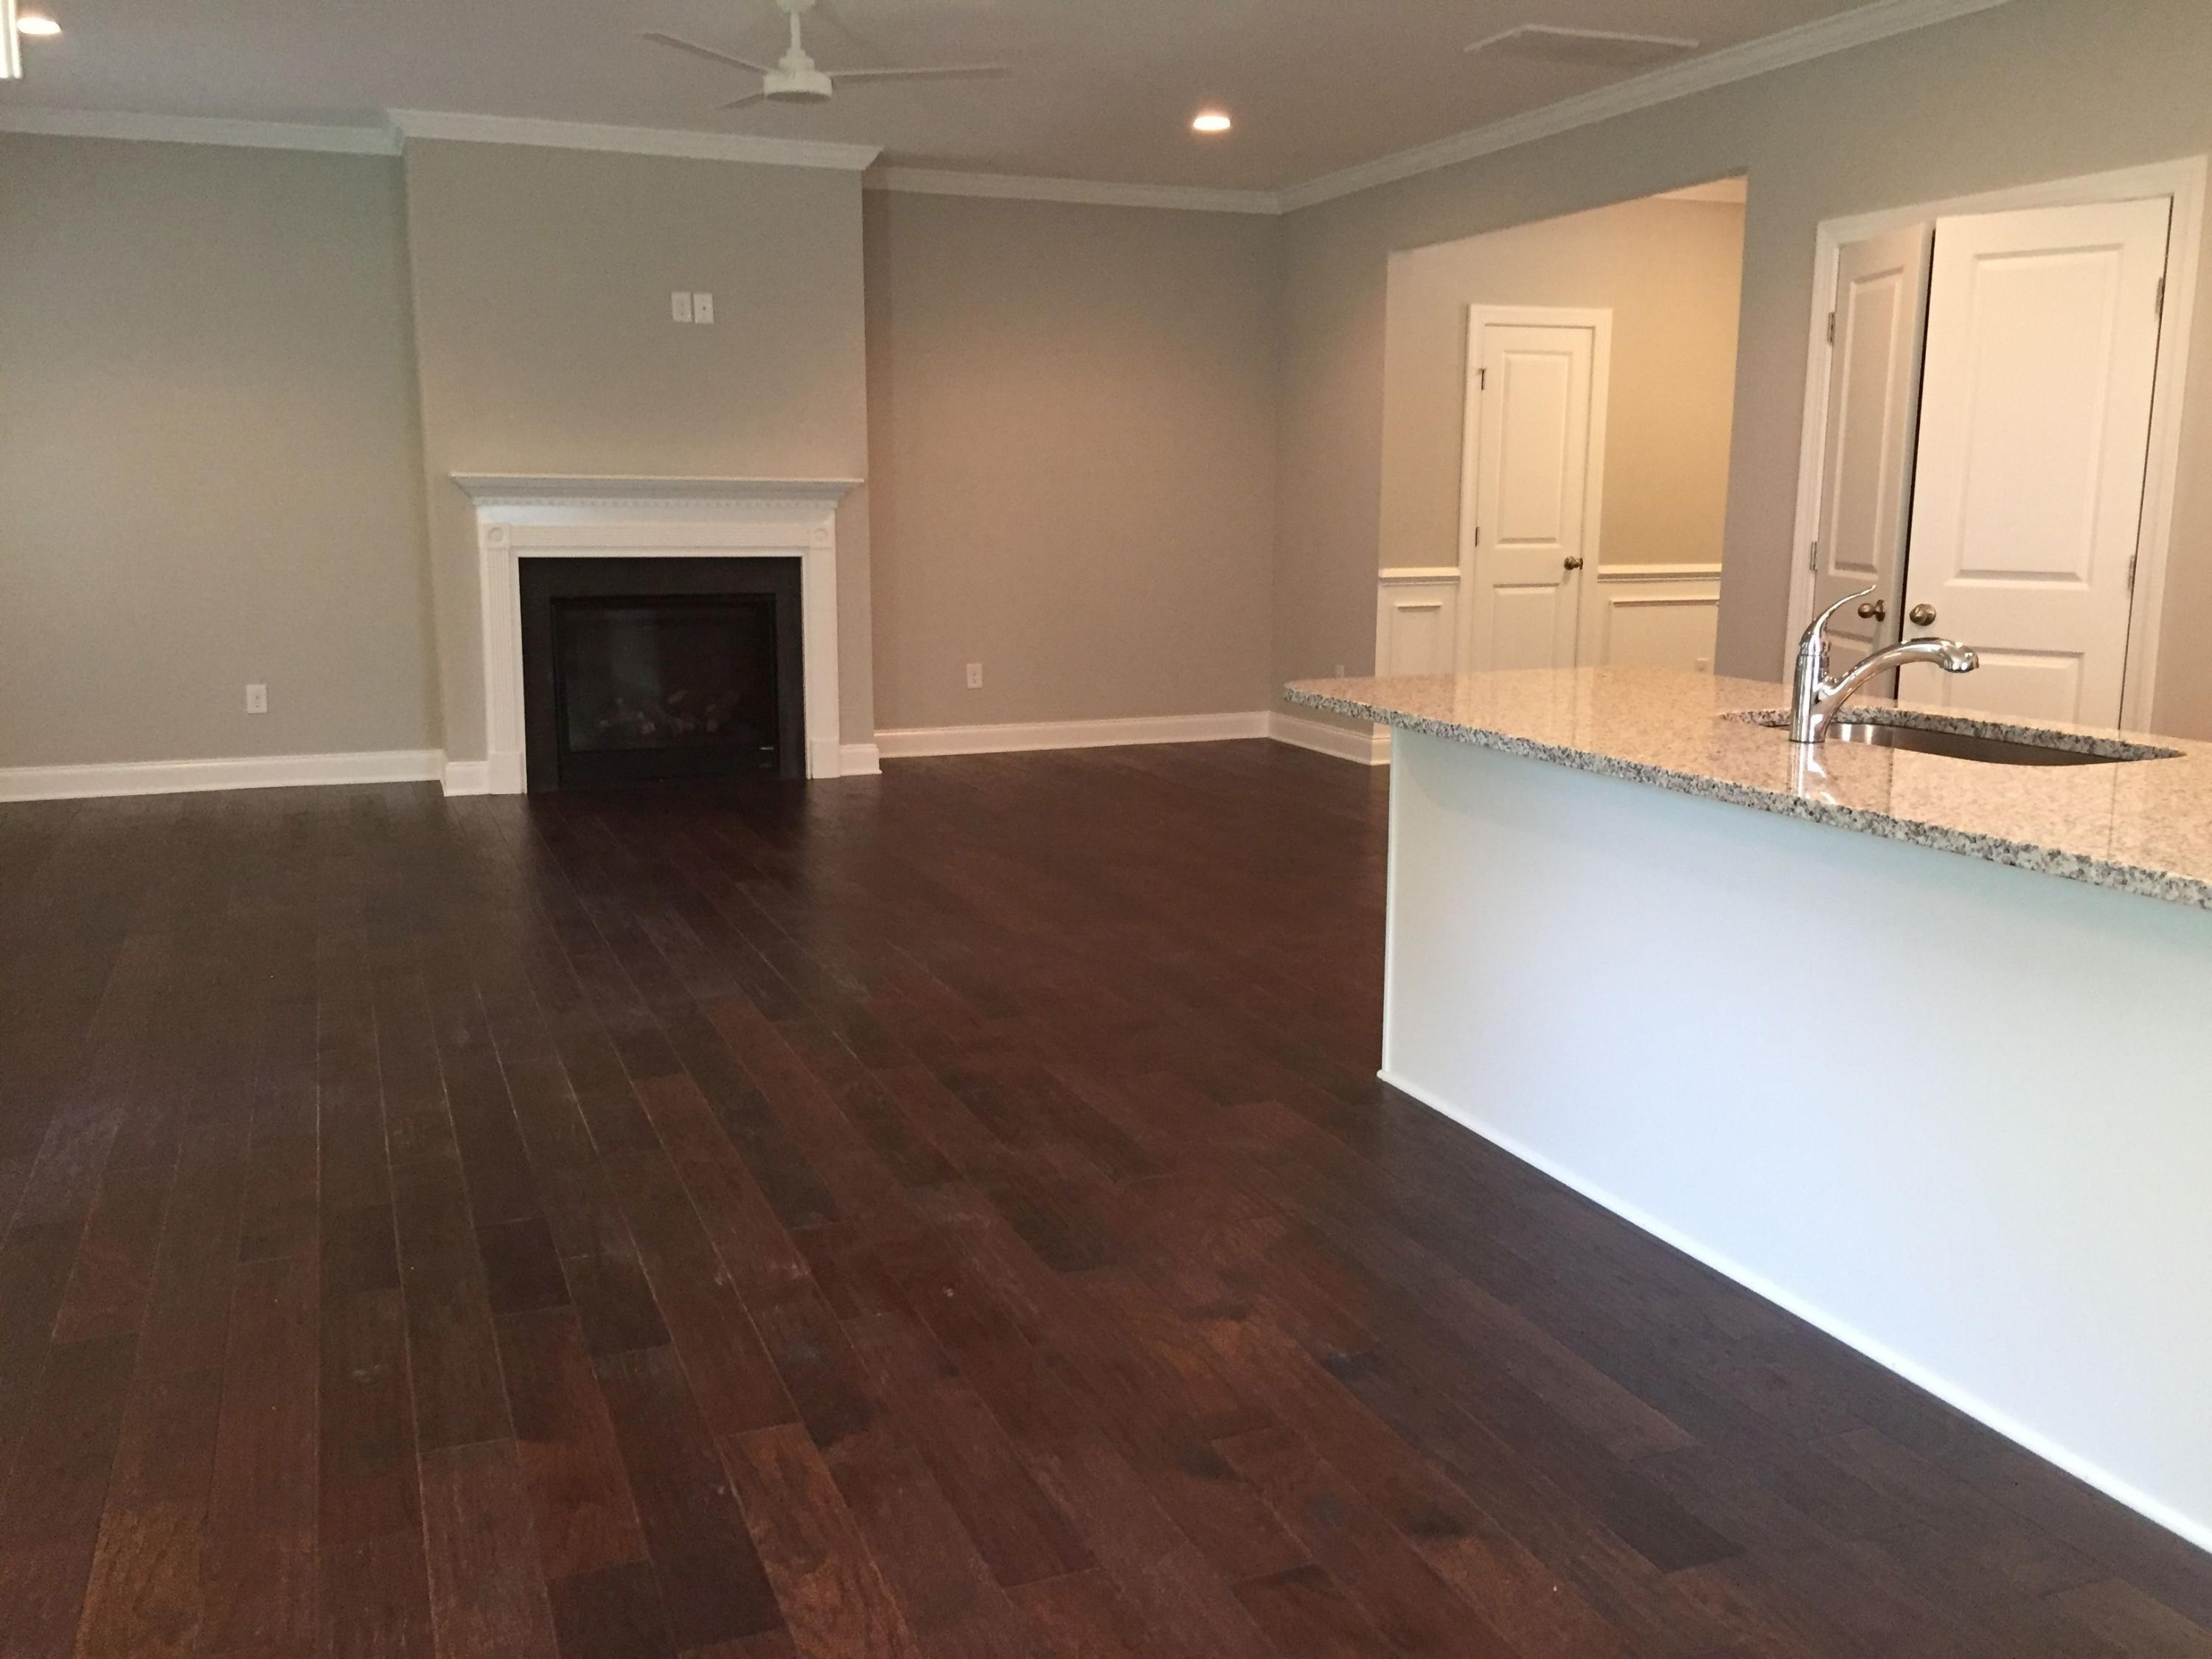 Photo of 1173 Sumner Ave, North Charleston, SC 29406